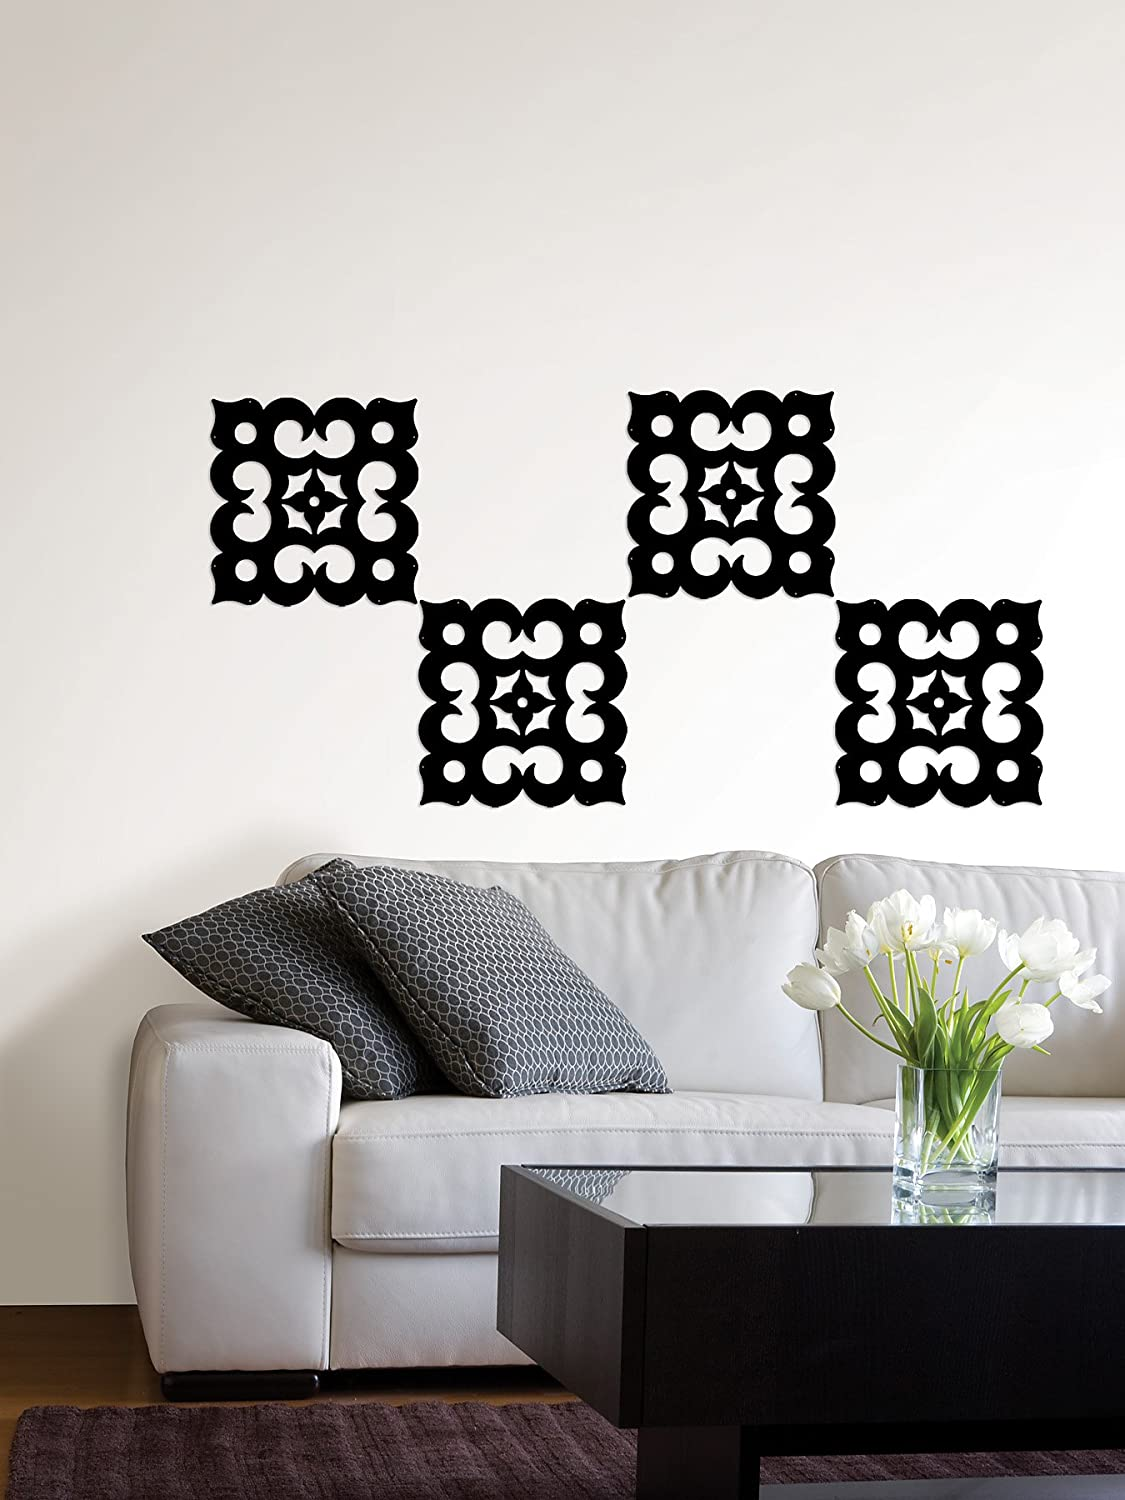 Wall Pops WPP96858 Casbah Room Wall Panels - Wall Decor Stickers ...